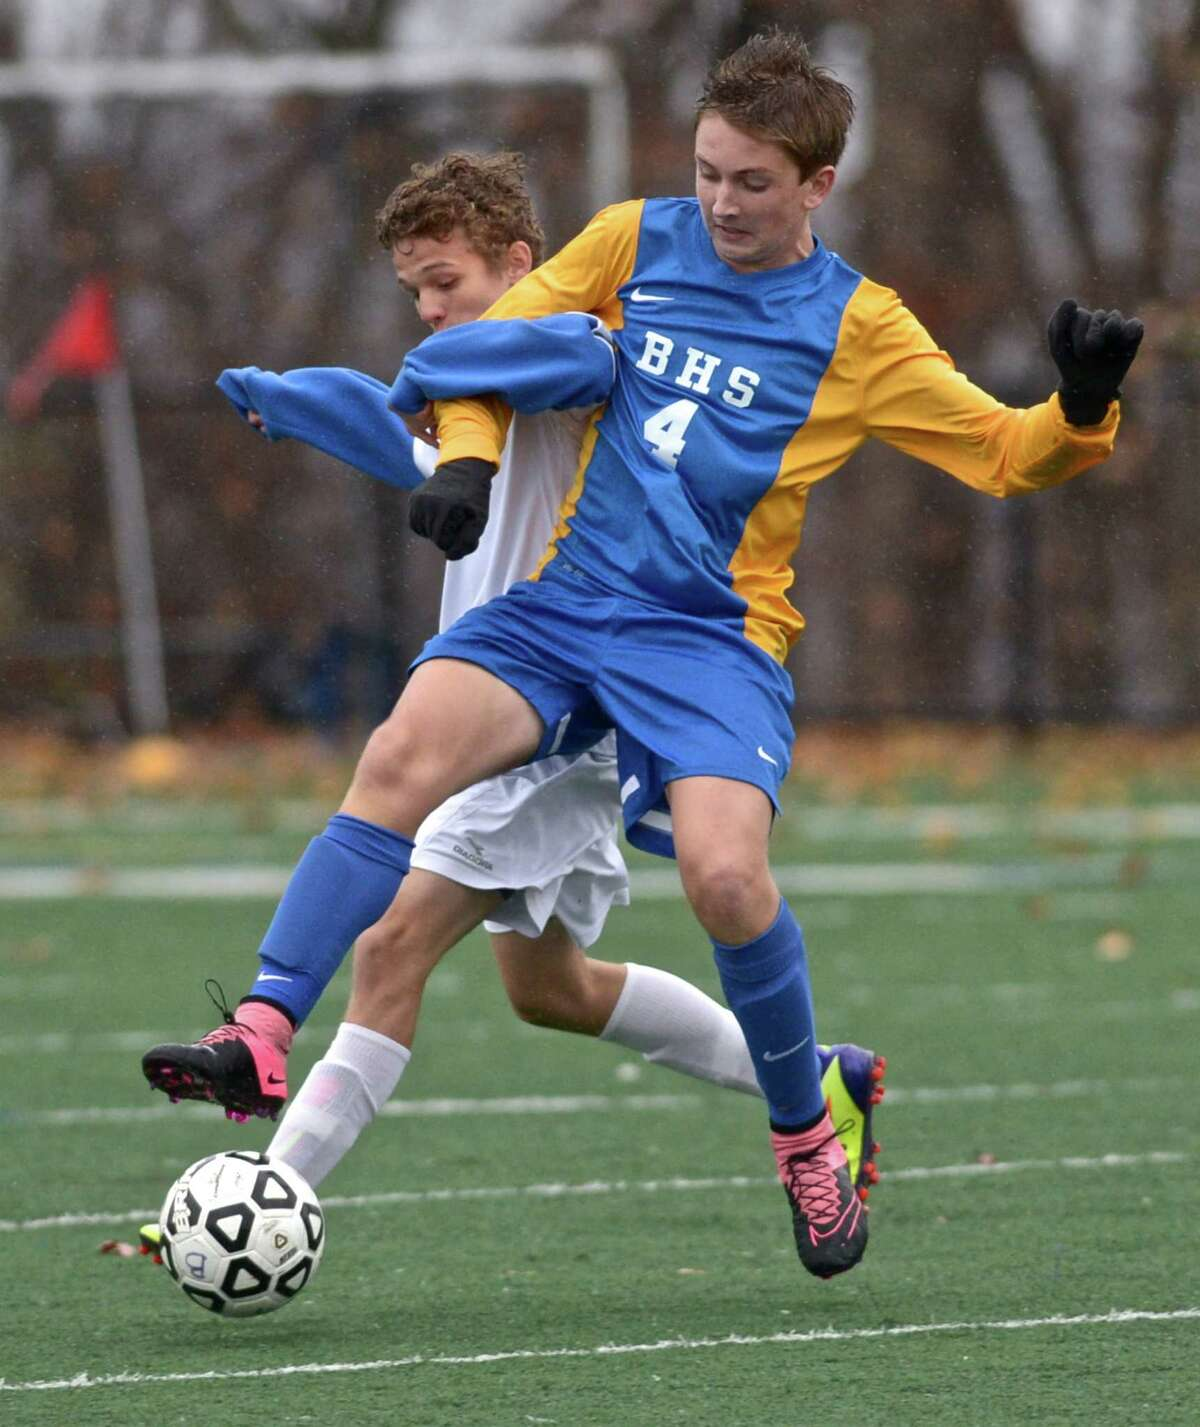 Brookfield's William Lonergan (4) and Abbott Tech's Kassiel Marcelo (2) fight for the ball in the class M boys soccer tournament first round game between No. 22 Brookfield and No. 11 Abbott Tech, On Tuesday afternoon, November 10, 2015, at Broadview Middle School, Danbury, Conn.